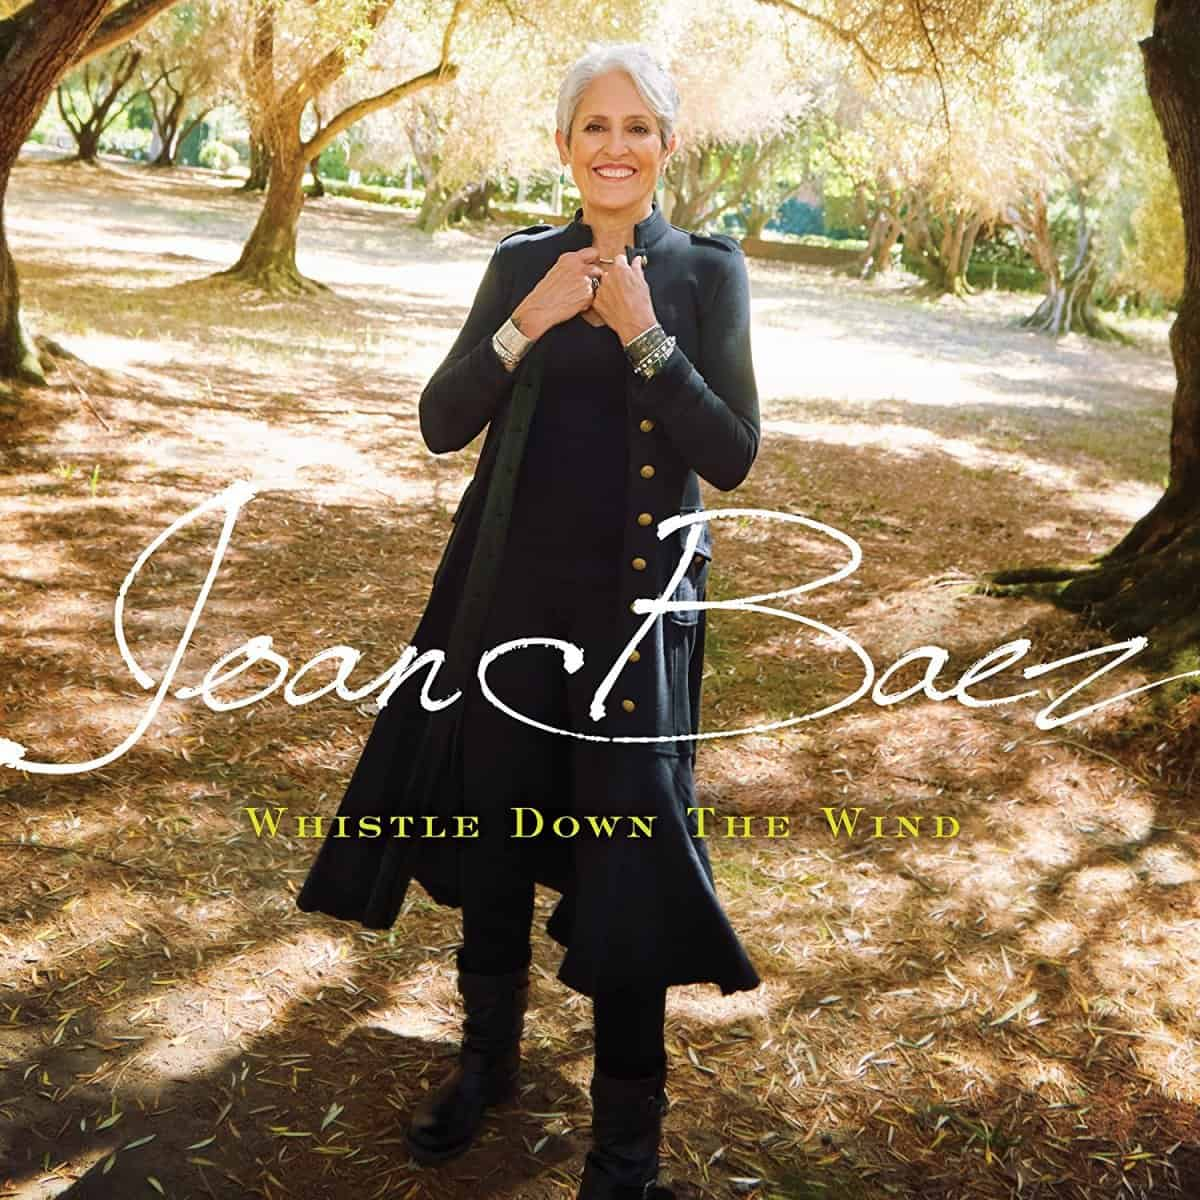 Joan-Baez-Whistle-Down-The-Wind-1200x1200.jpg